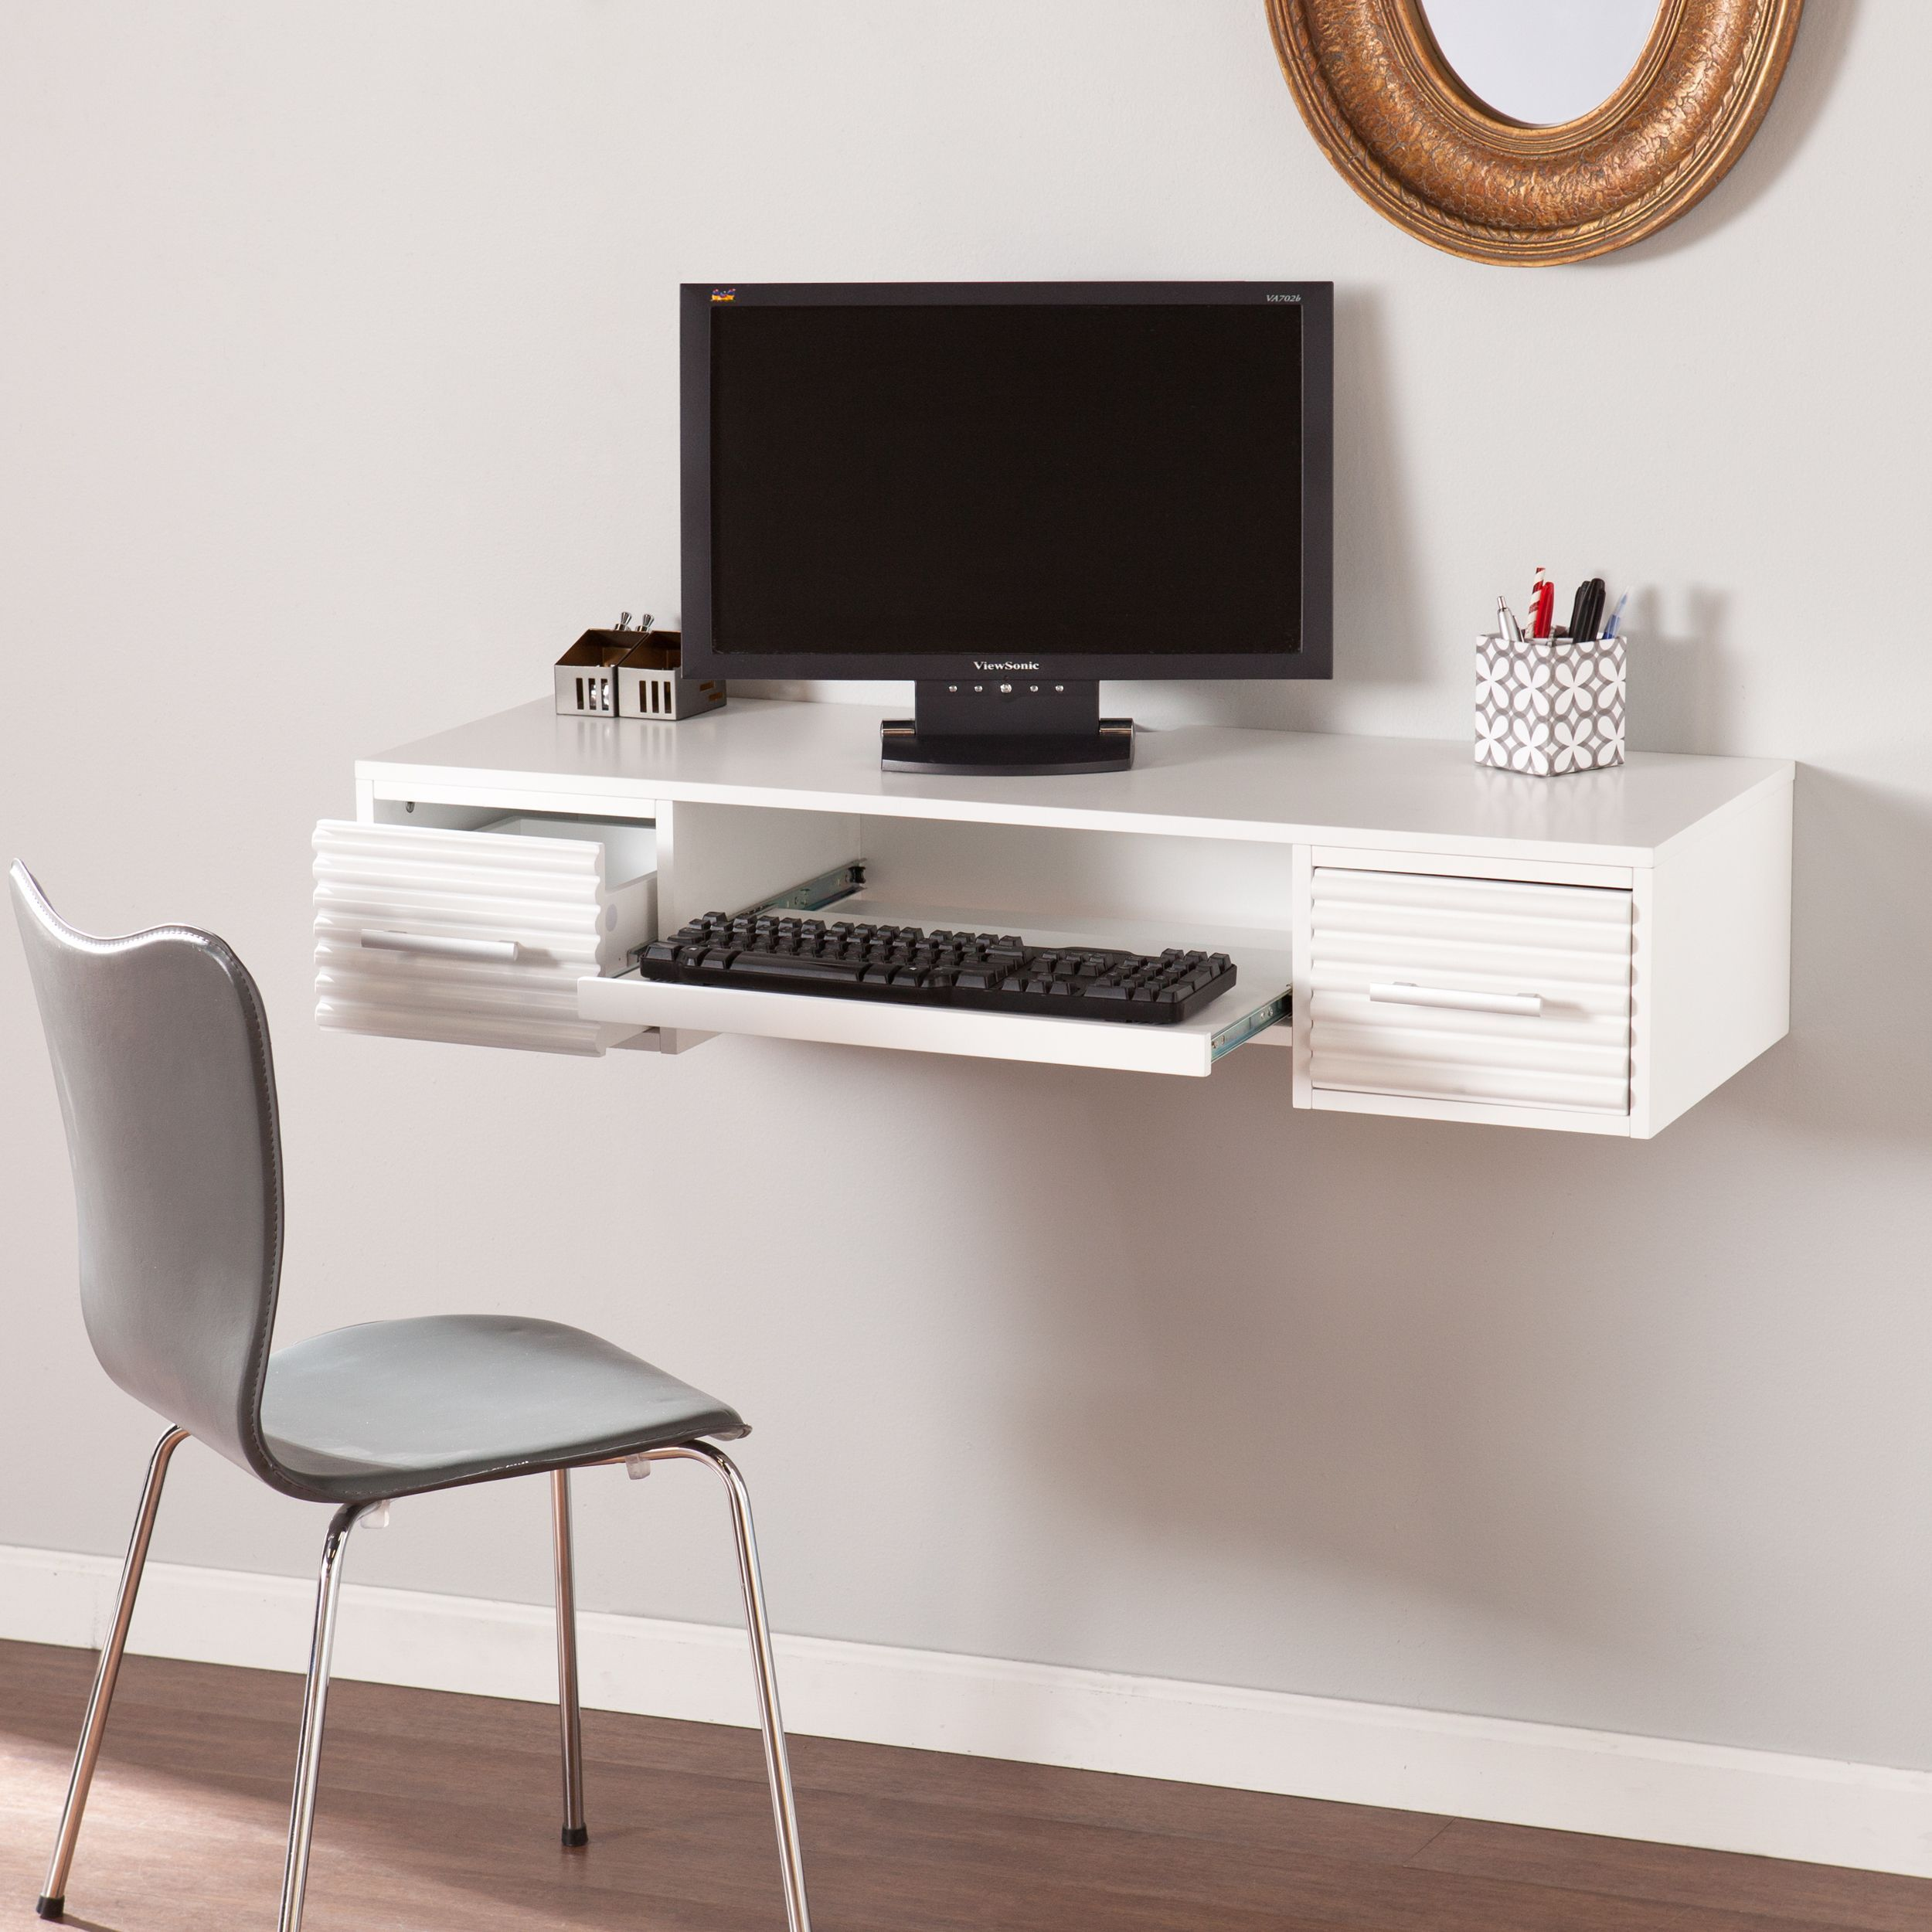 Harper Blvd Shaw White Wall Mount Desk (OS2016OH), Size Small | Wall ...